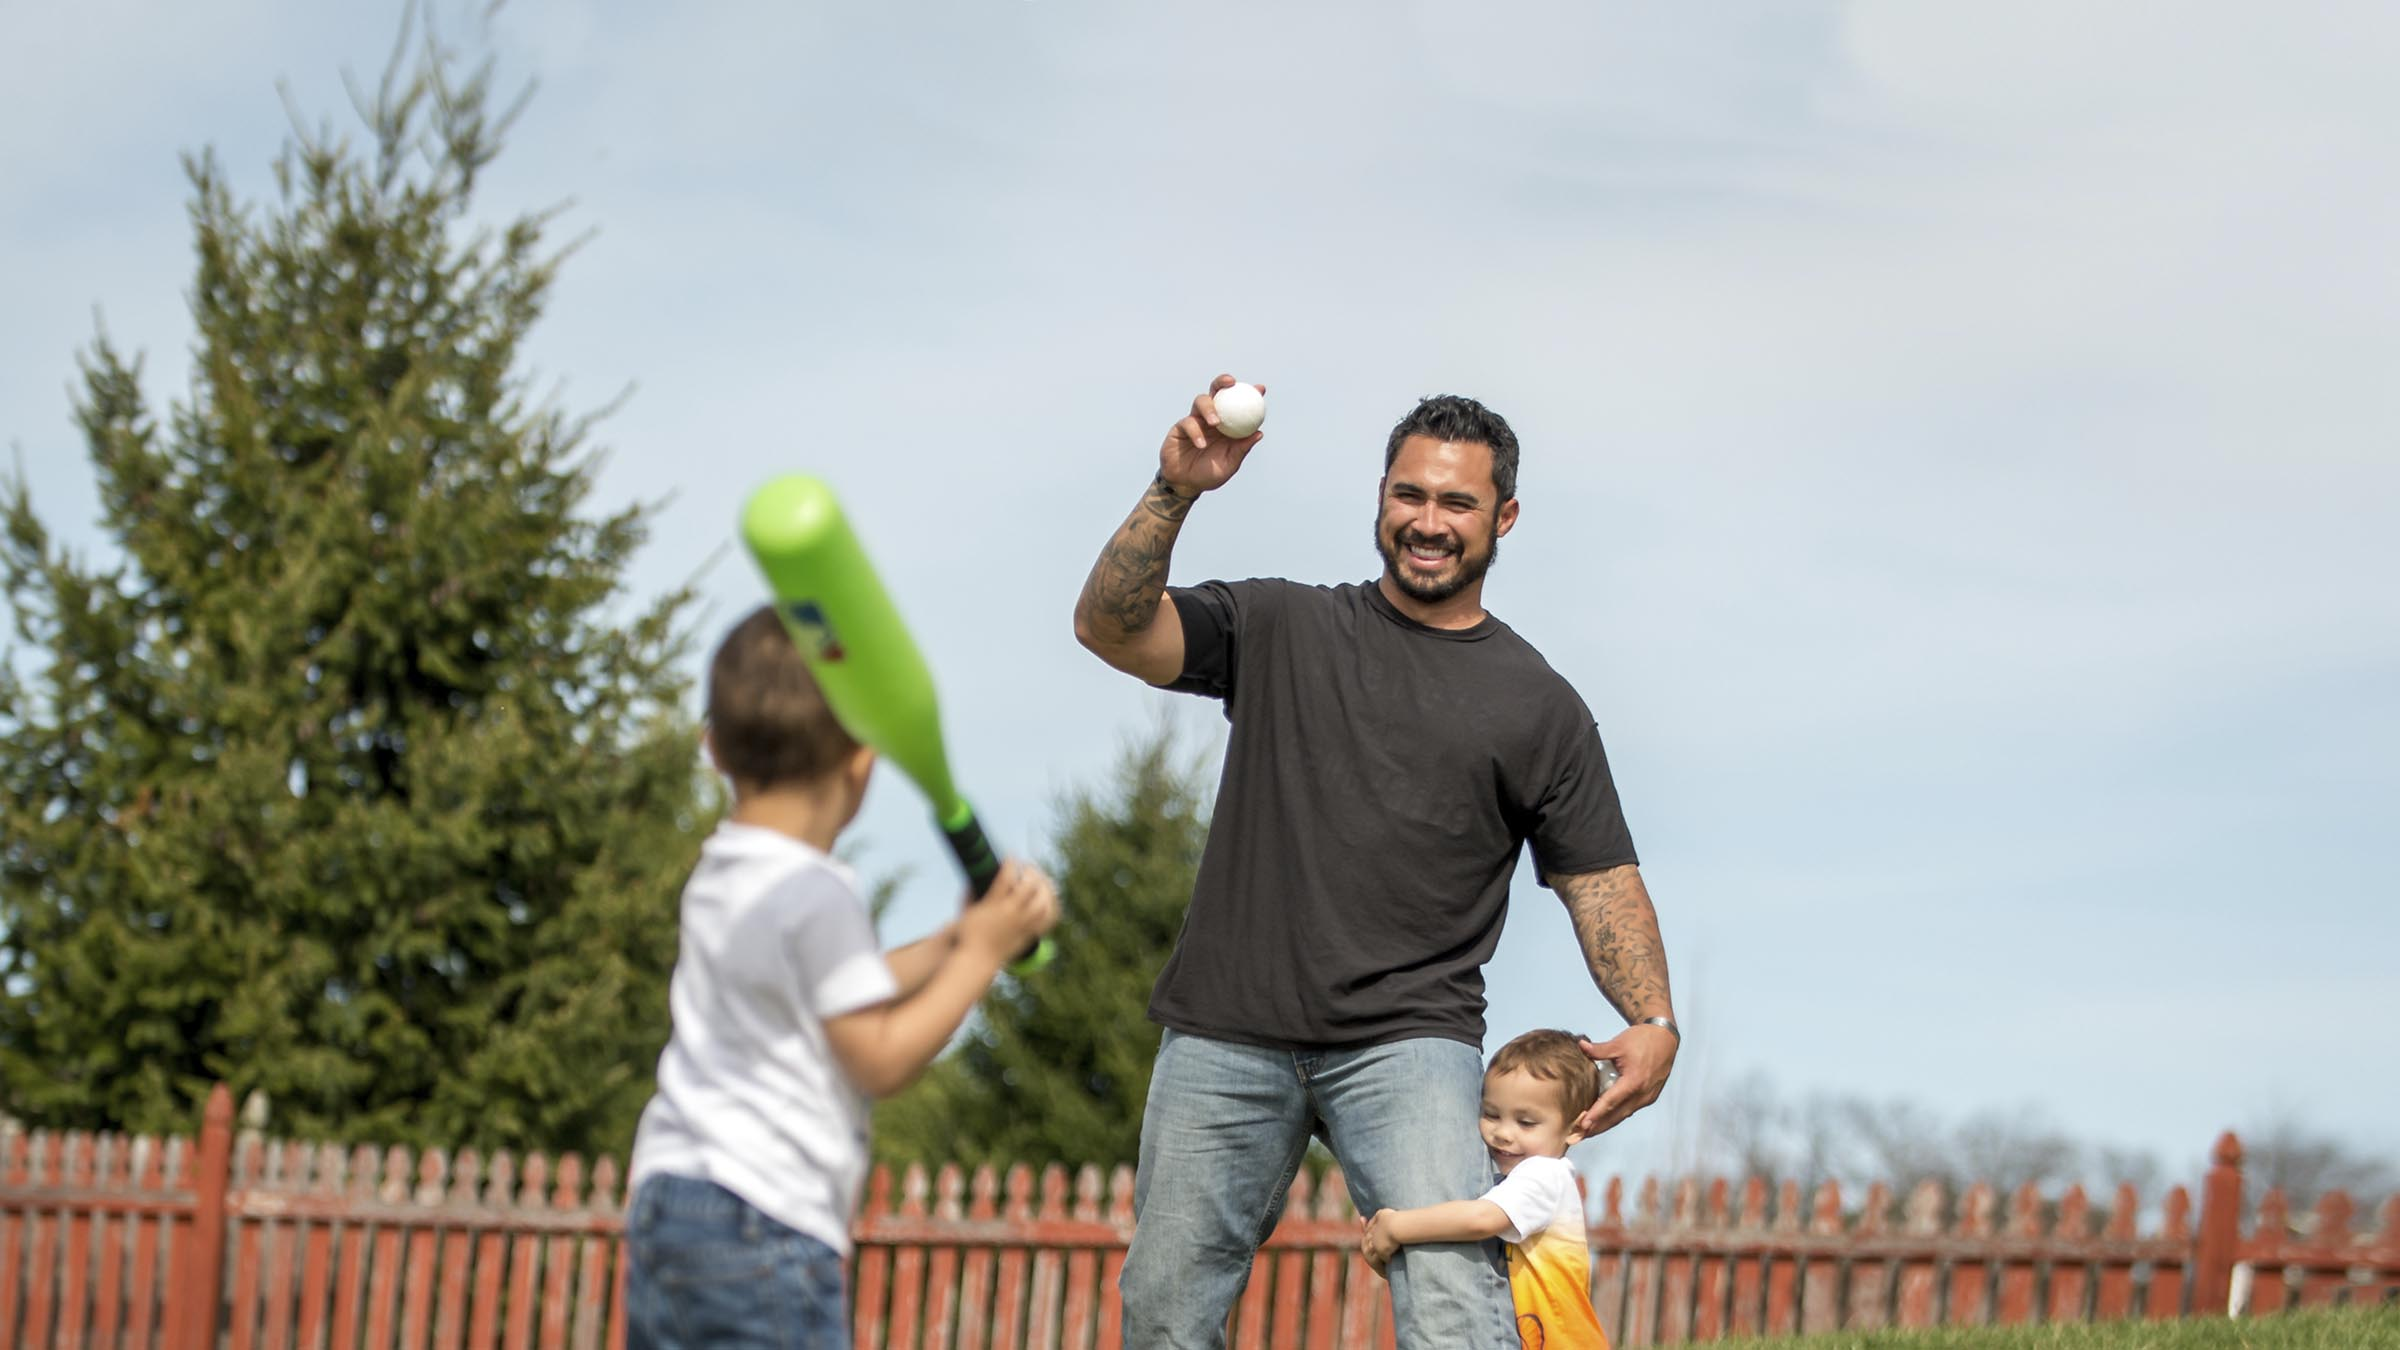 Dad playing baseball in backyard with kids